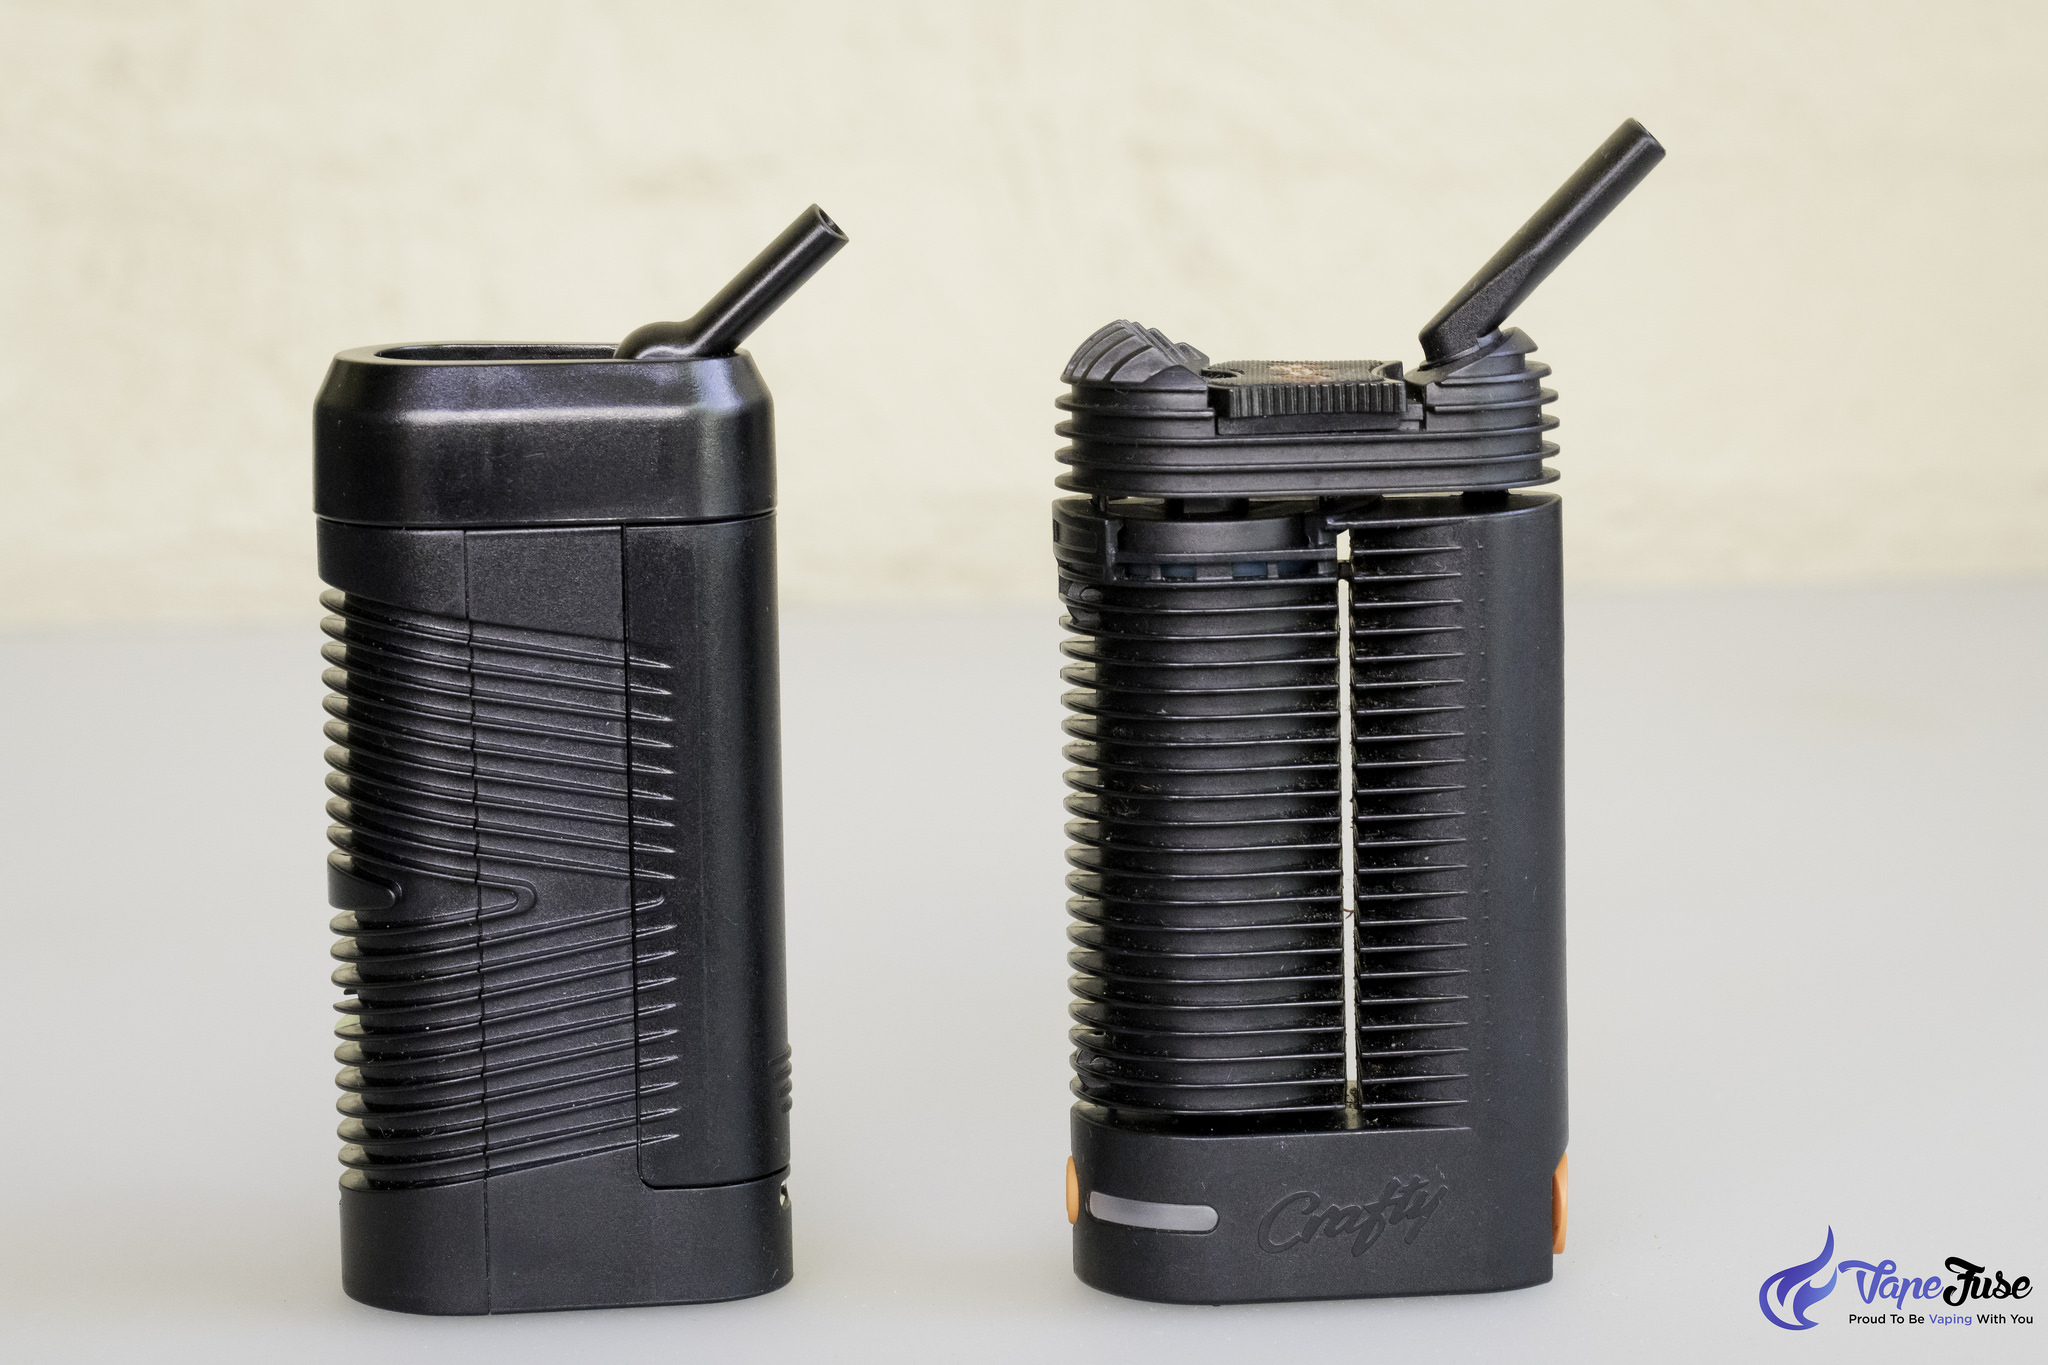 Vivant Alternate and Storz and Bickel Crafty vaporizers